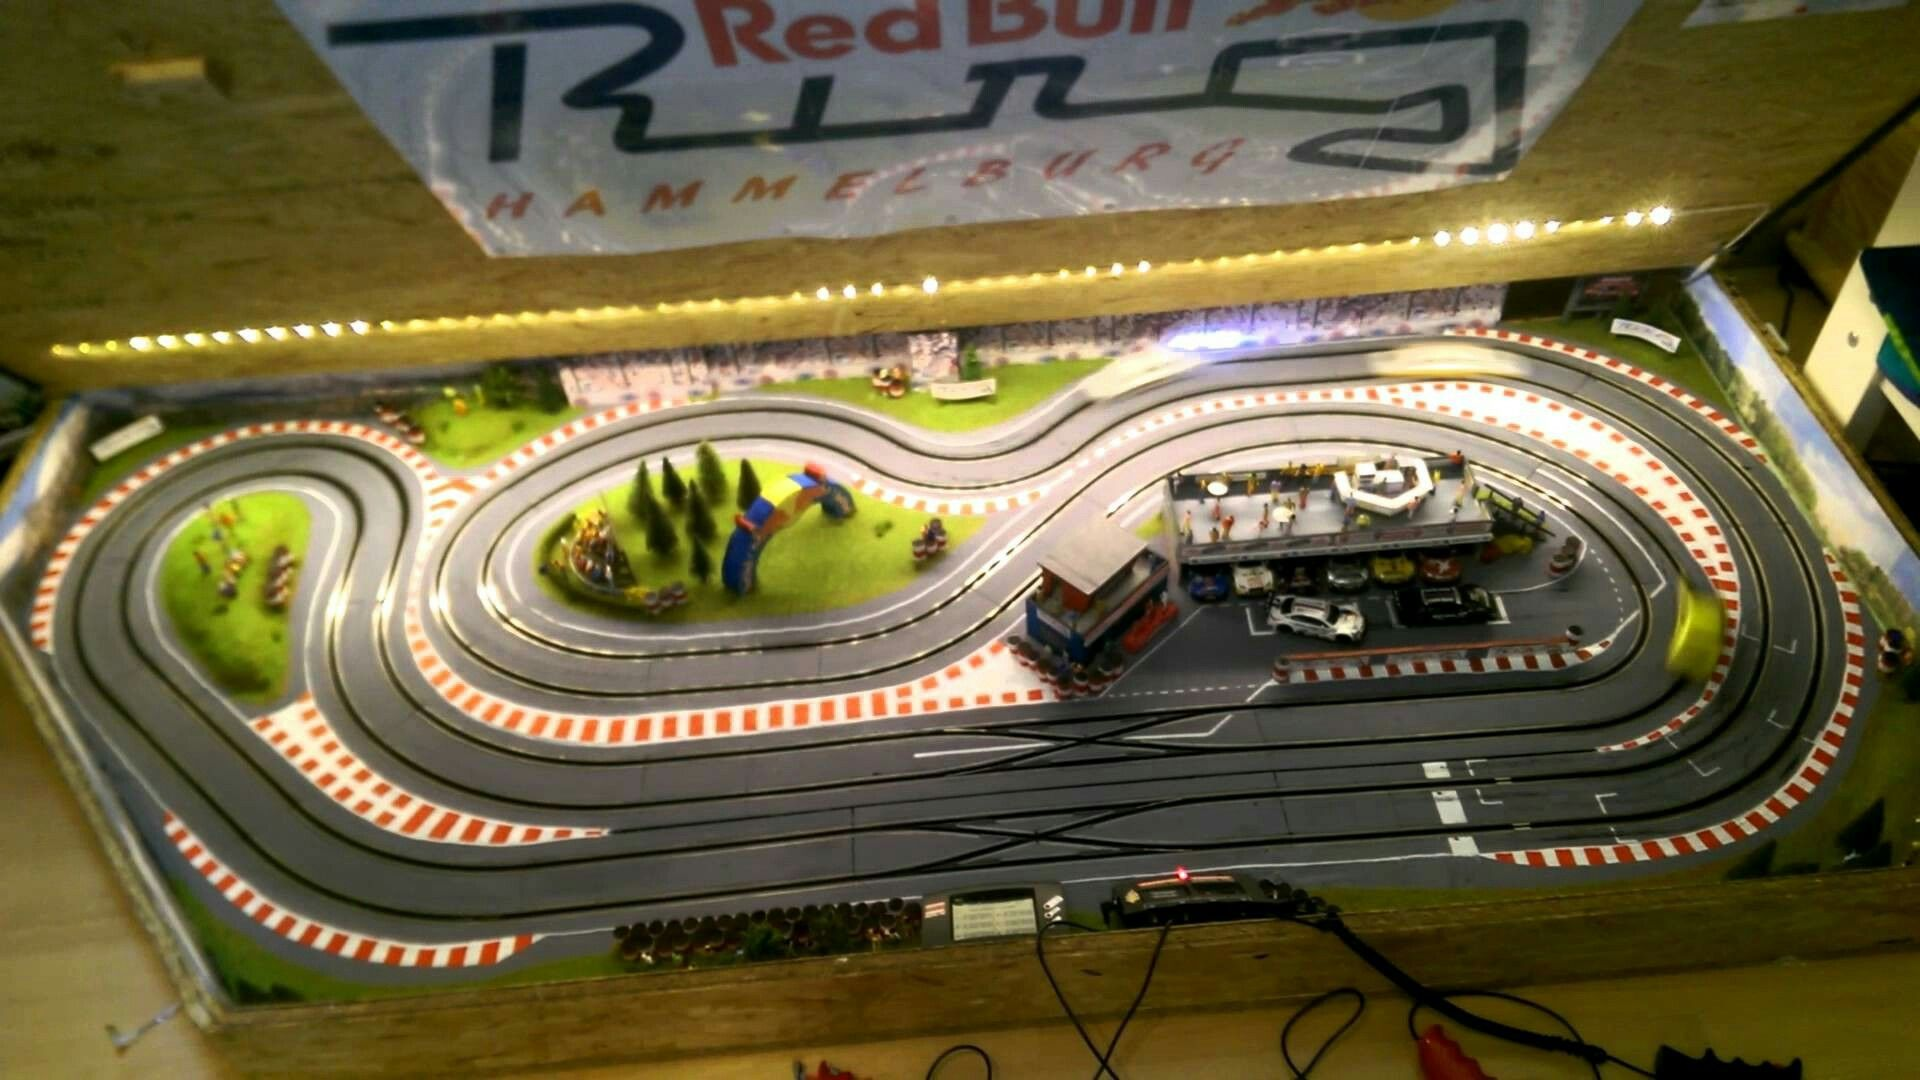 red bull ring slot car layout ideas pinterest red. Black Bedroom Furniture Sets. Home Design Ideas